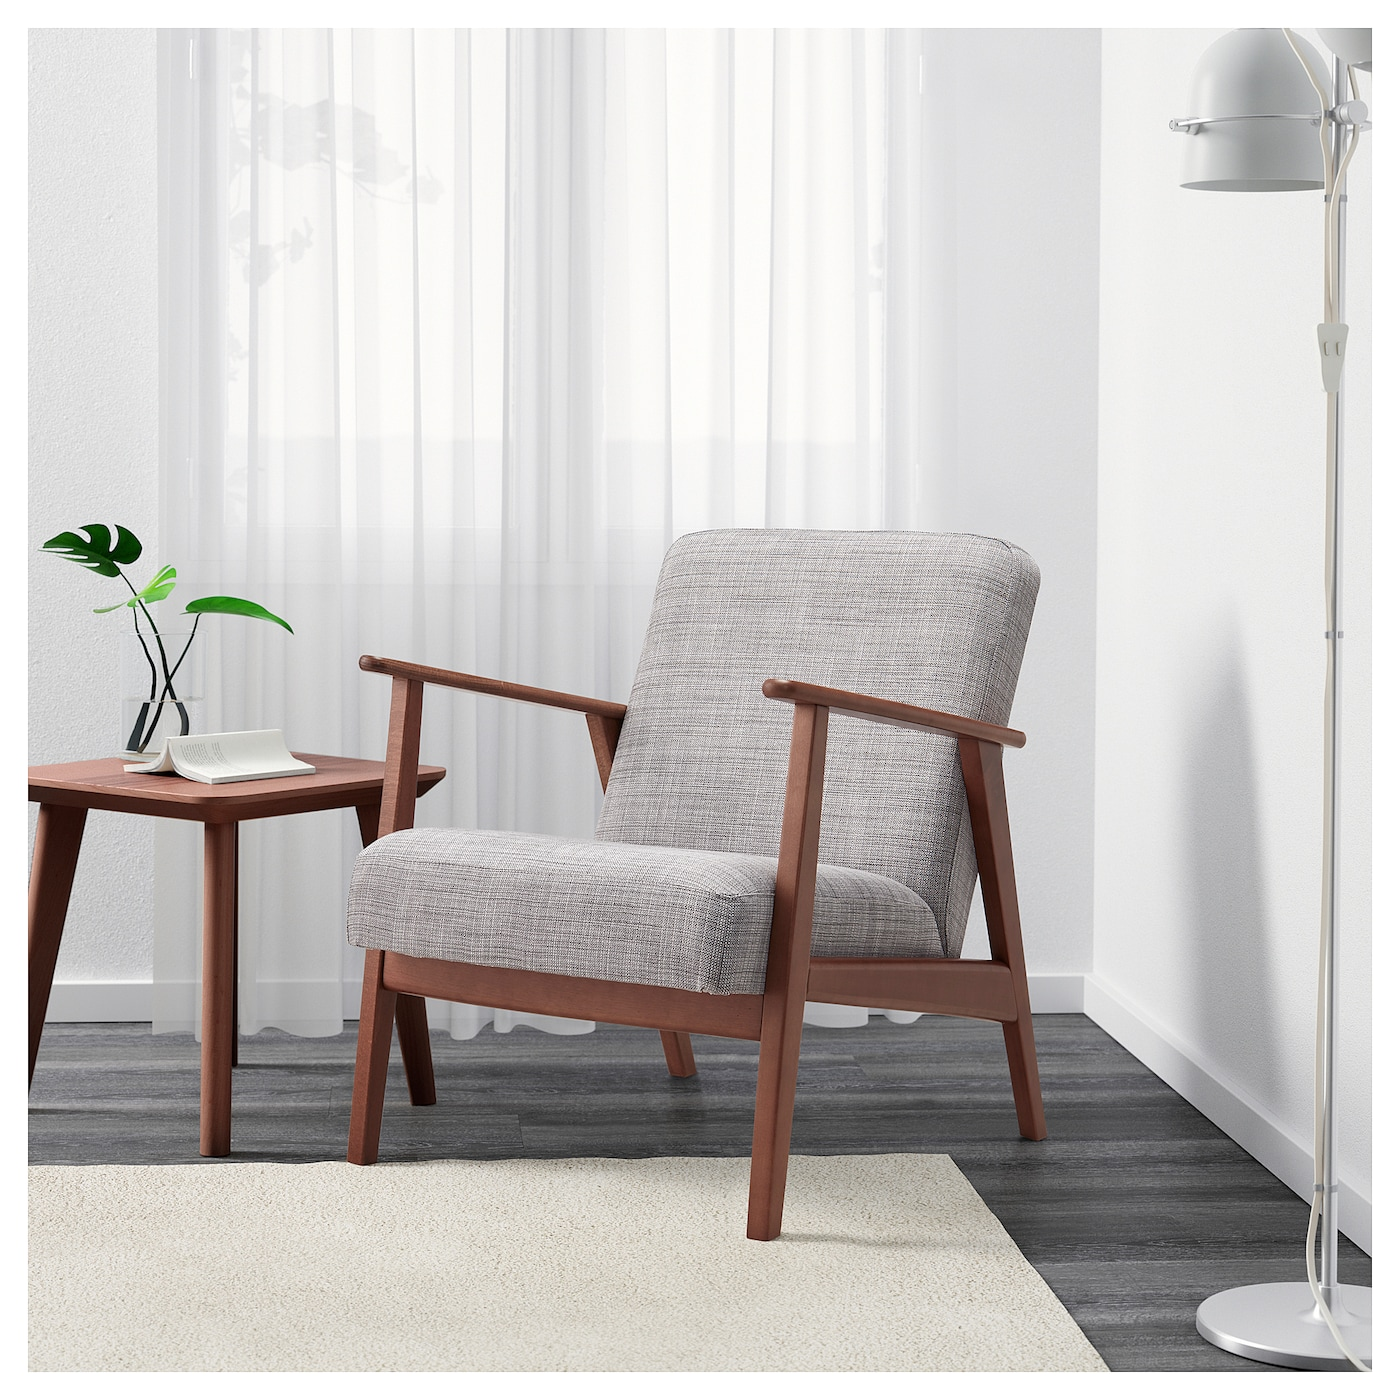 IKEA EKENÄSET armchair The chair legs are made of solid wood, which is a durable natural material.